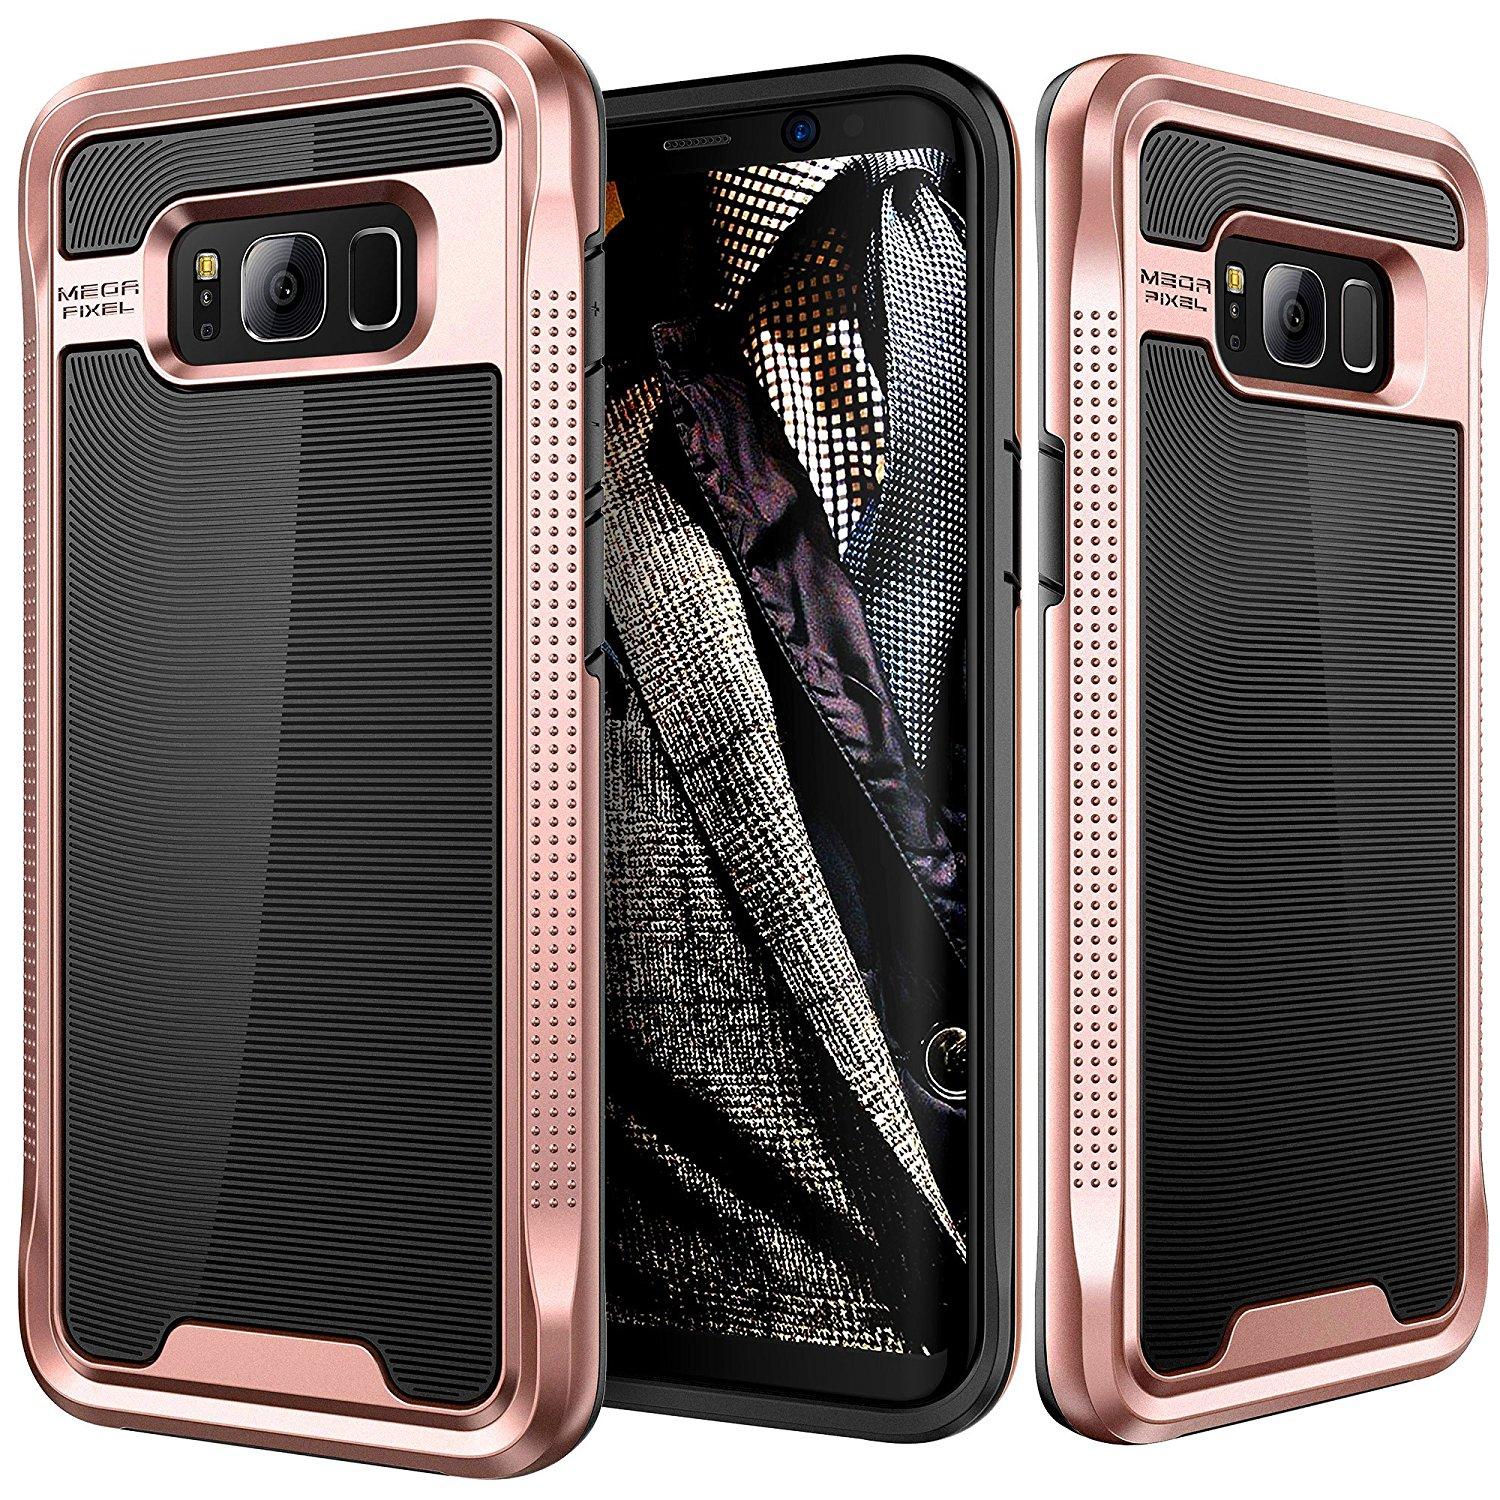 Galaxy S8 Case, E LV Galaxy S8 - Hybrid [Scratch/Dust Proof] Armor Defender Slim Shock-Absorption Bumper Case for Samsung Galaxy S8 - [BLACK/ ROSE GOLD]